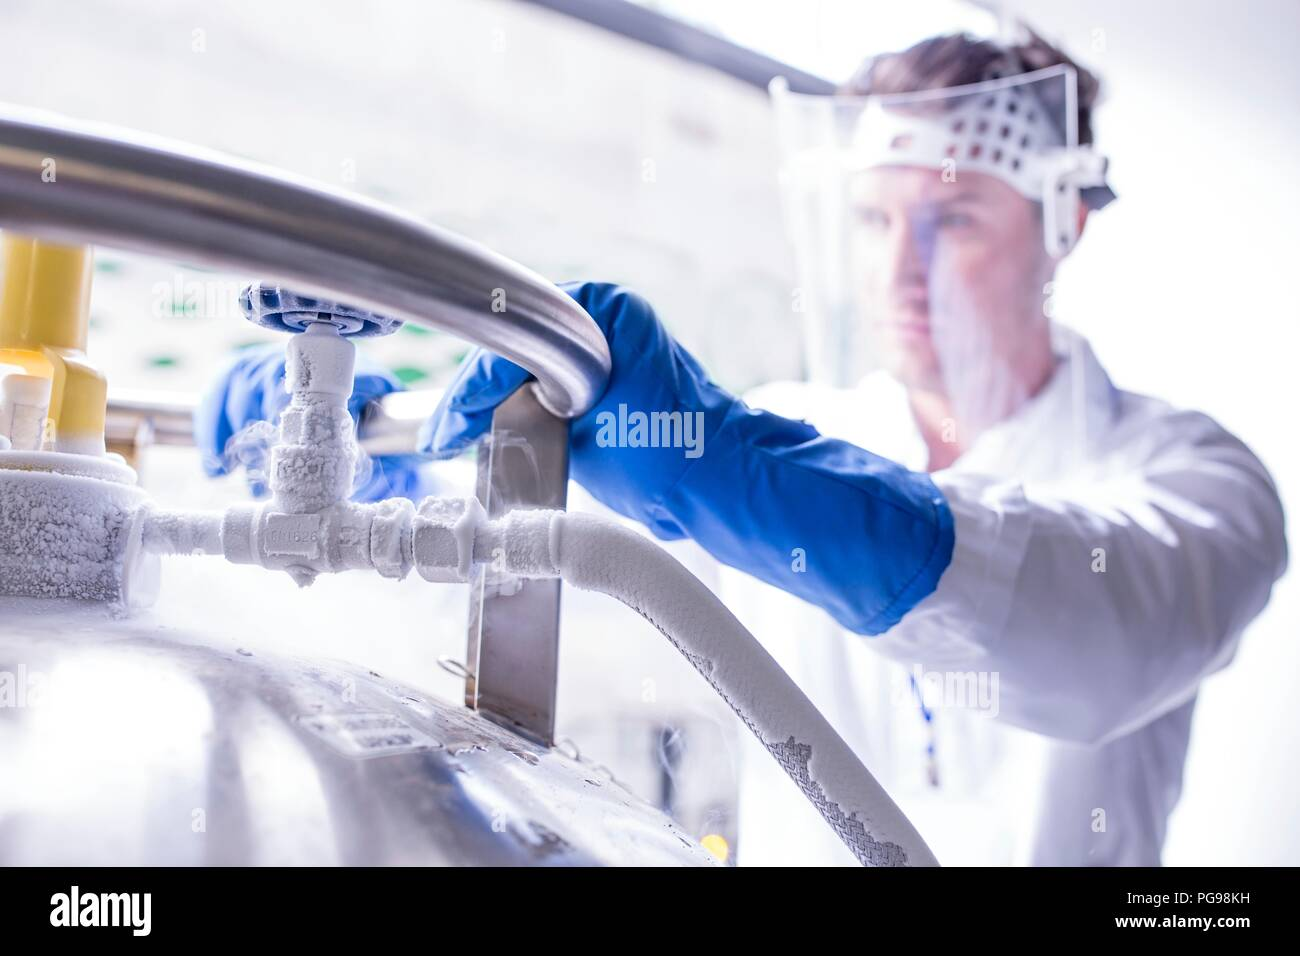 Technician storing stem cell samples in cryostorage. They have been frozen in liquid nitrogen to preserve them. Stem cells are a potential source of cells to repair damaged tissue in diseases such as Parkinson's and insulin-dependent diabetes. - Stock Image